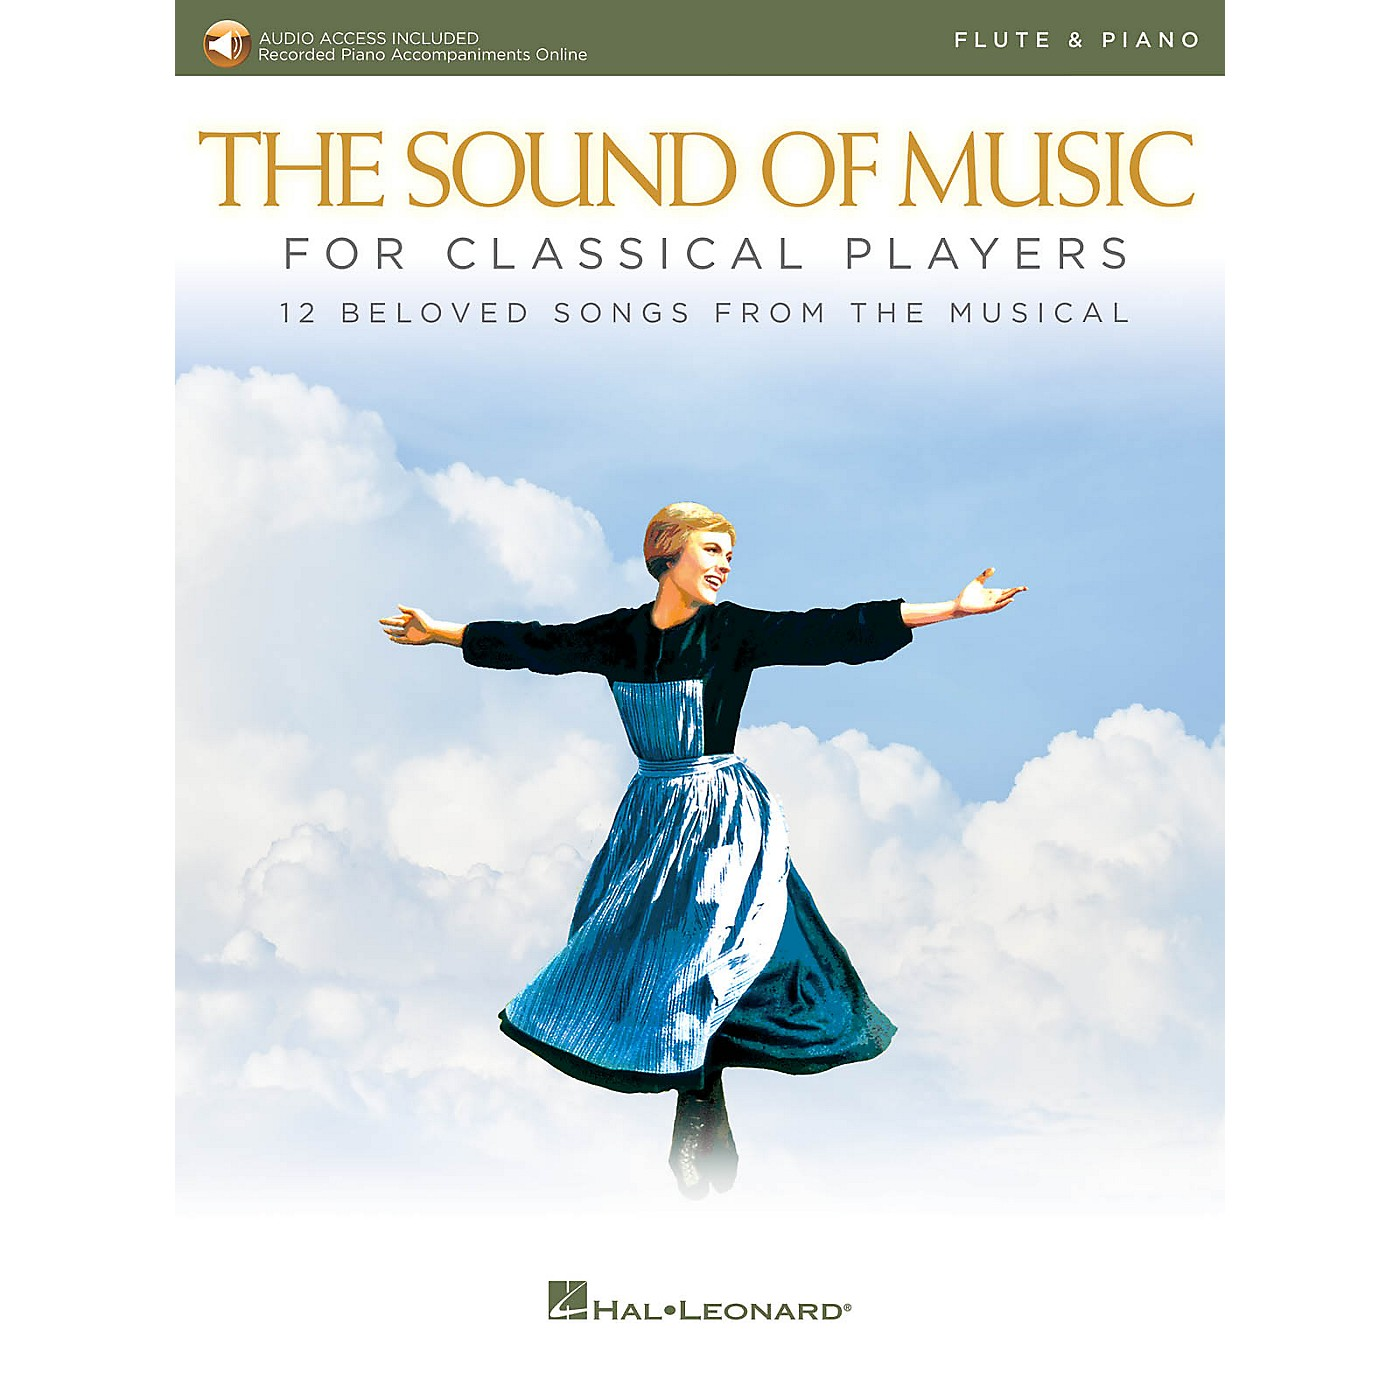 Hal Leonard The Sound of Music for Classical Players - Flute and Piano Book/Audio Online thumbnail